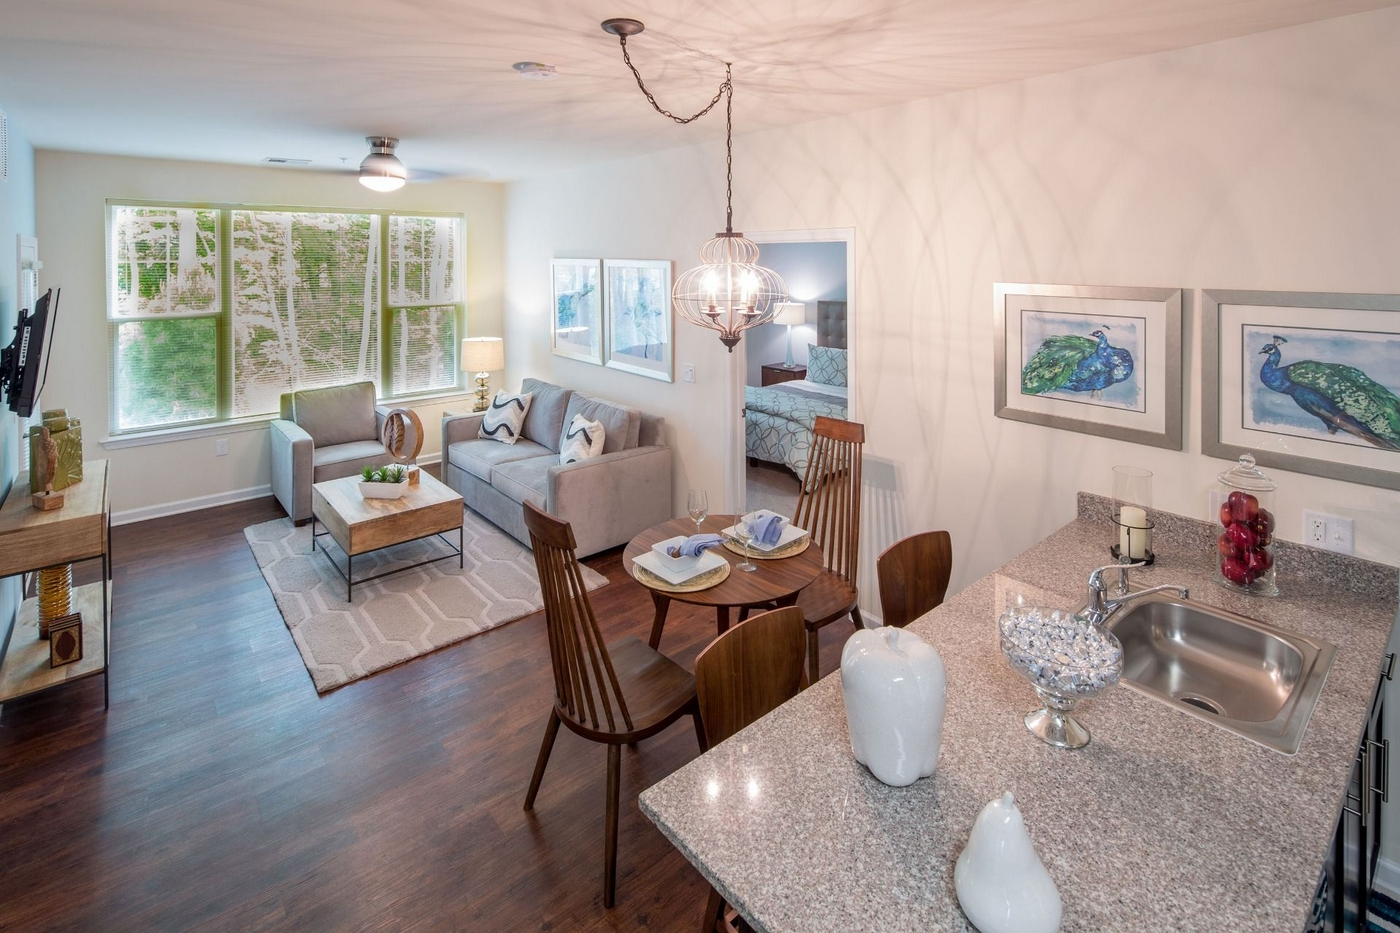 Interior image of kitchen, dining table, and living room furniture